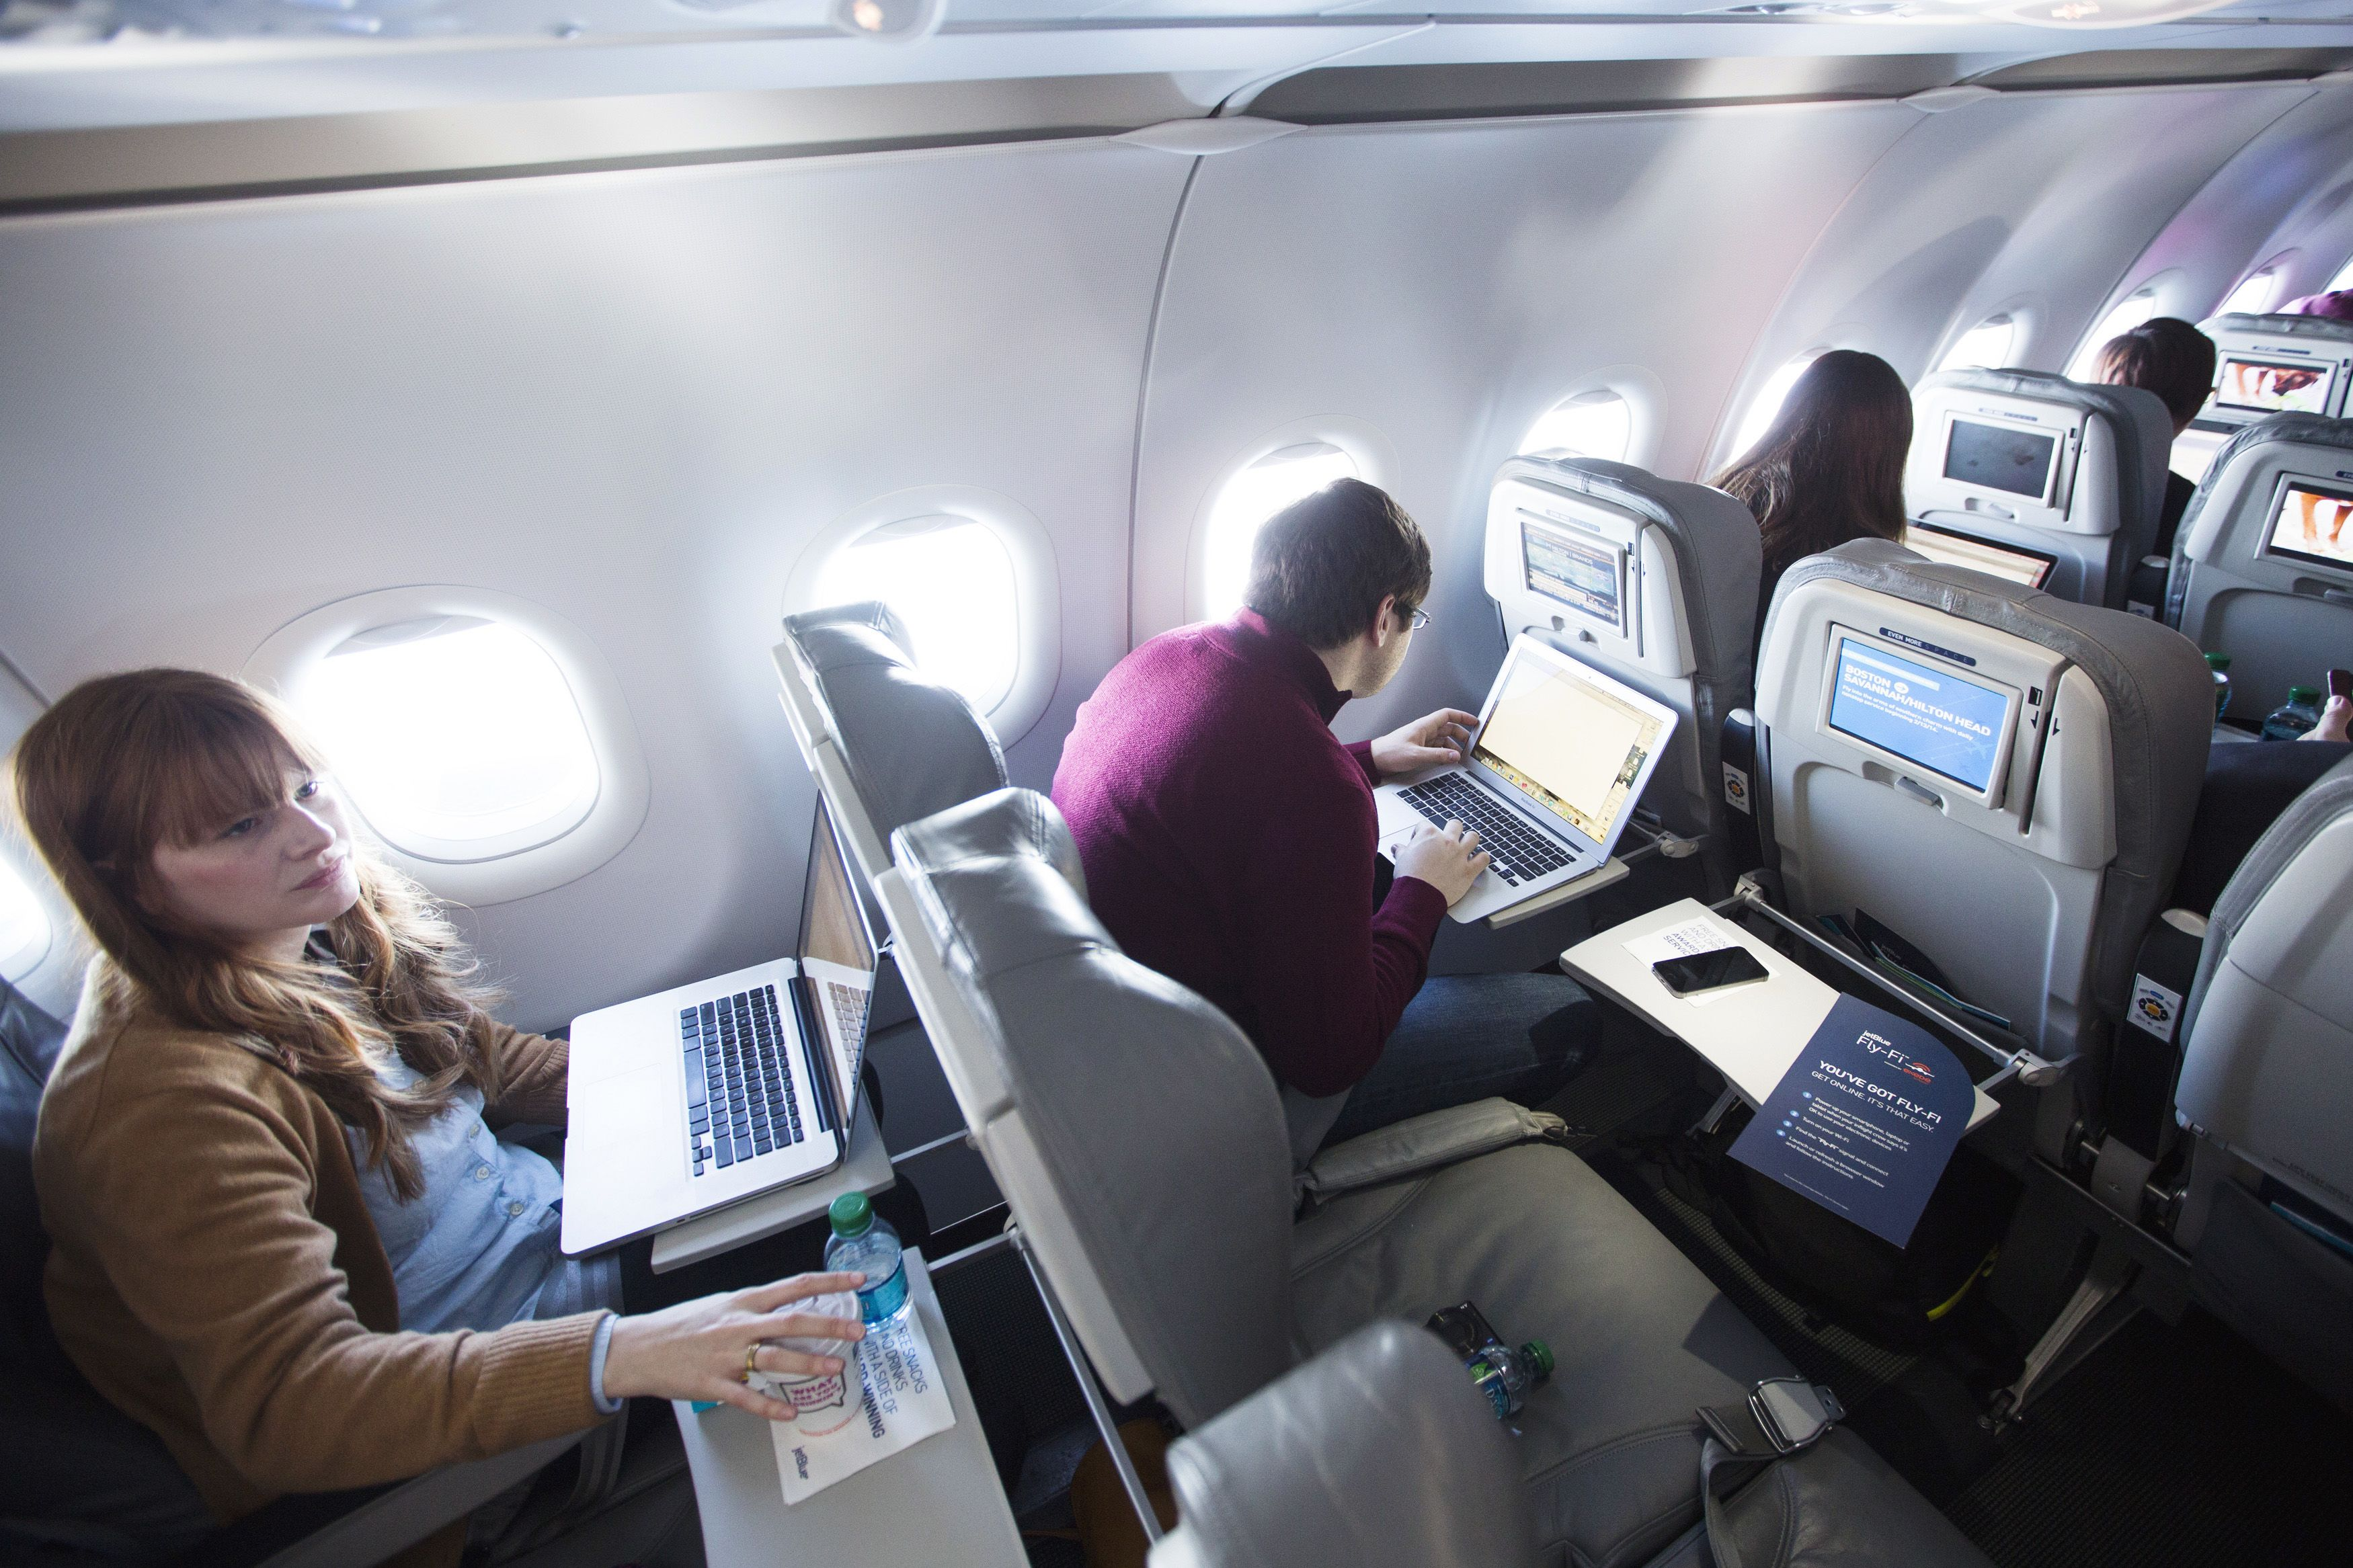 Delta's test of free in-flight Wi-Fi may shame other airlines